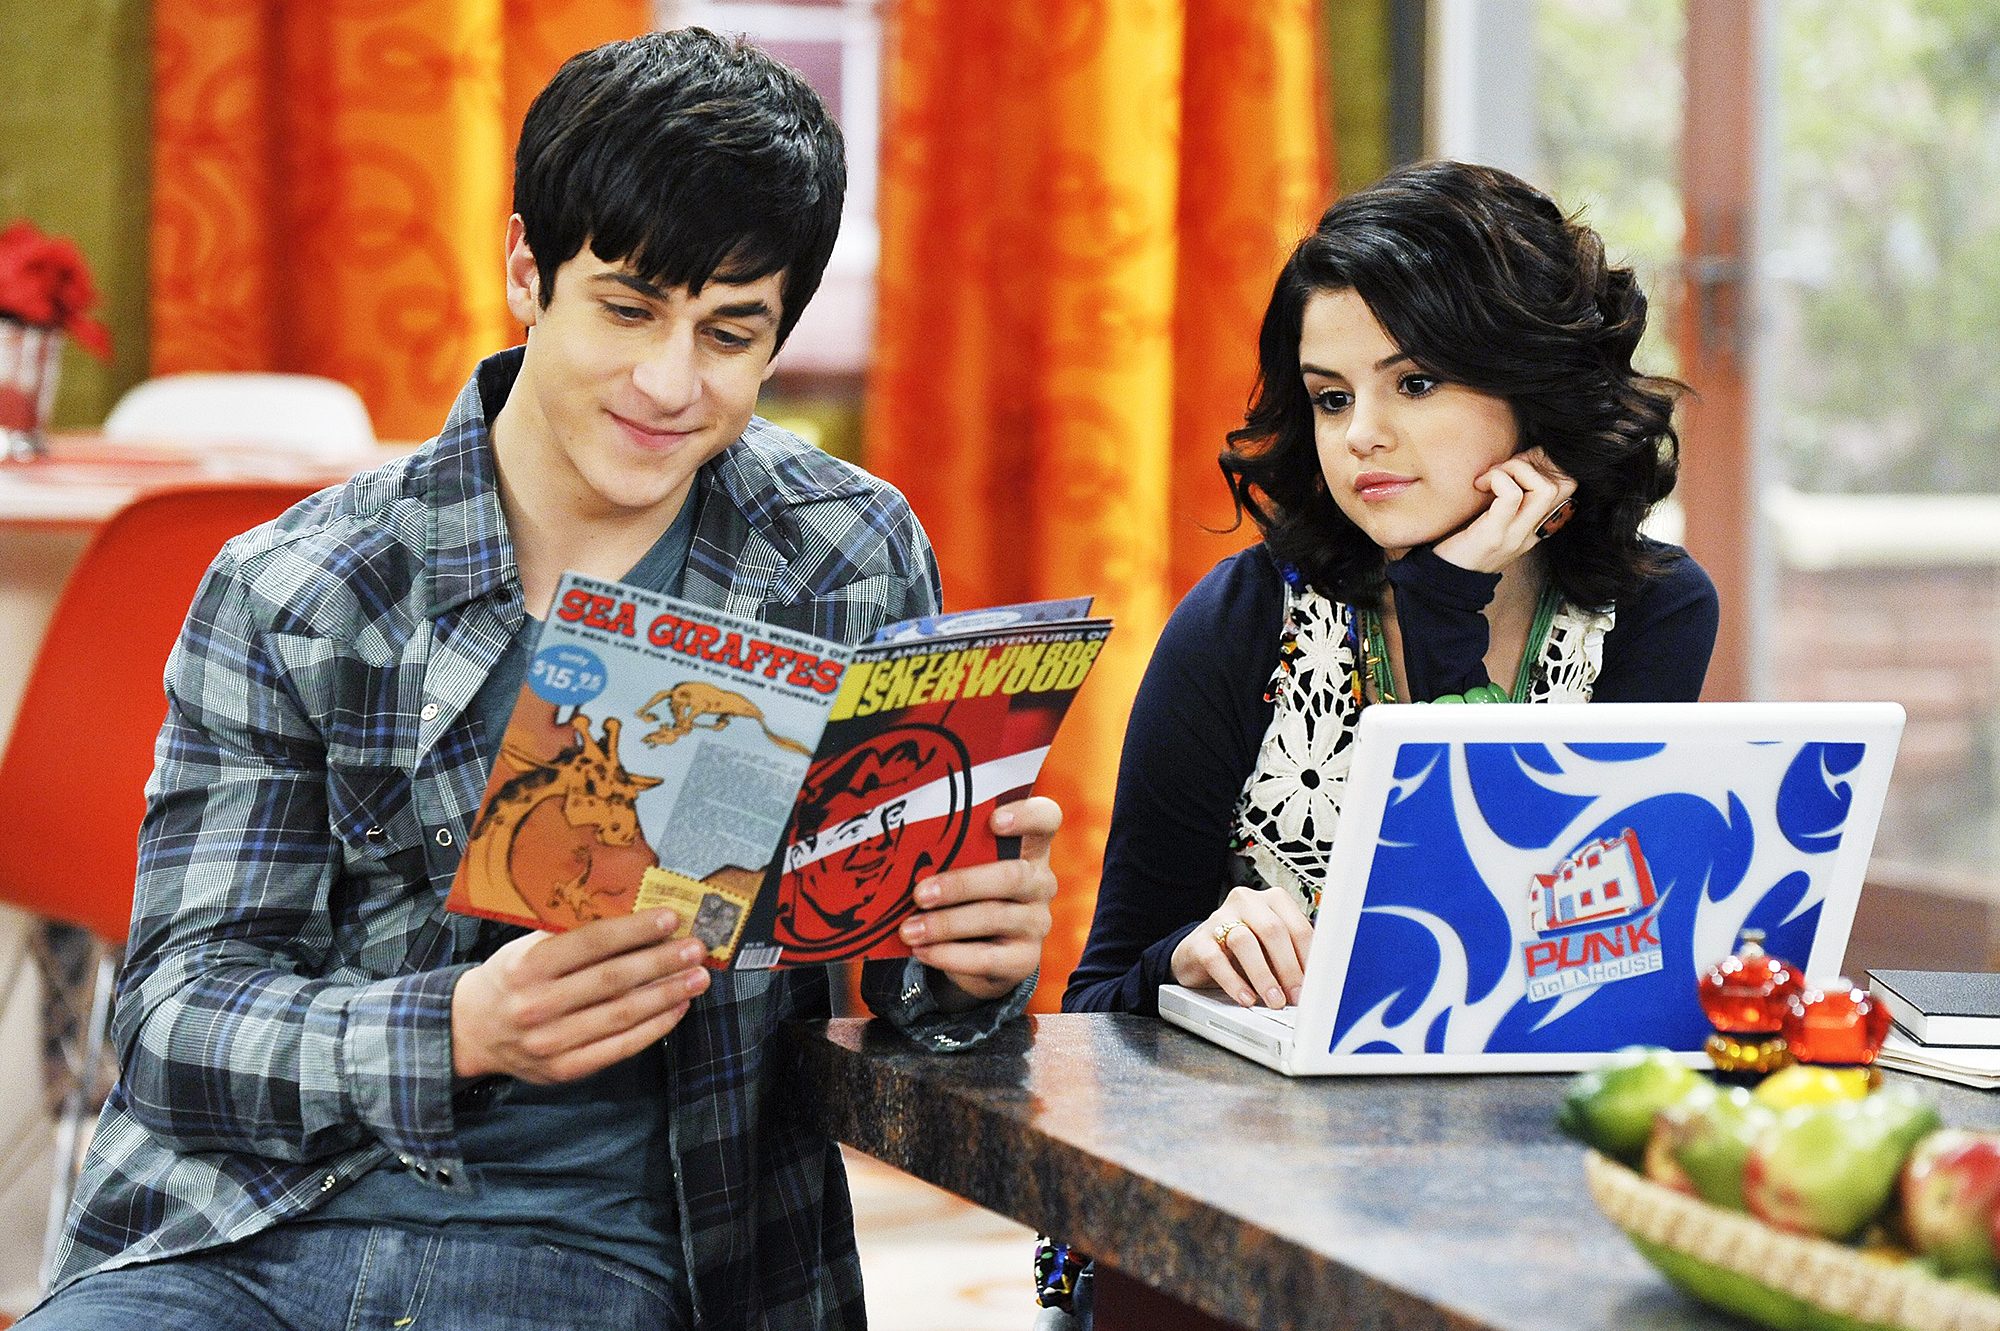 Selena Gomez, David Henrie Have Mini 'Wizards of Waverly Place' Reunion